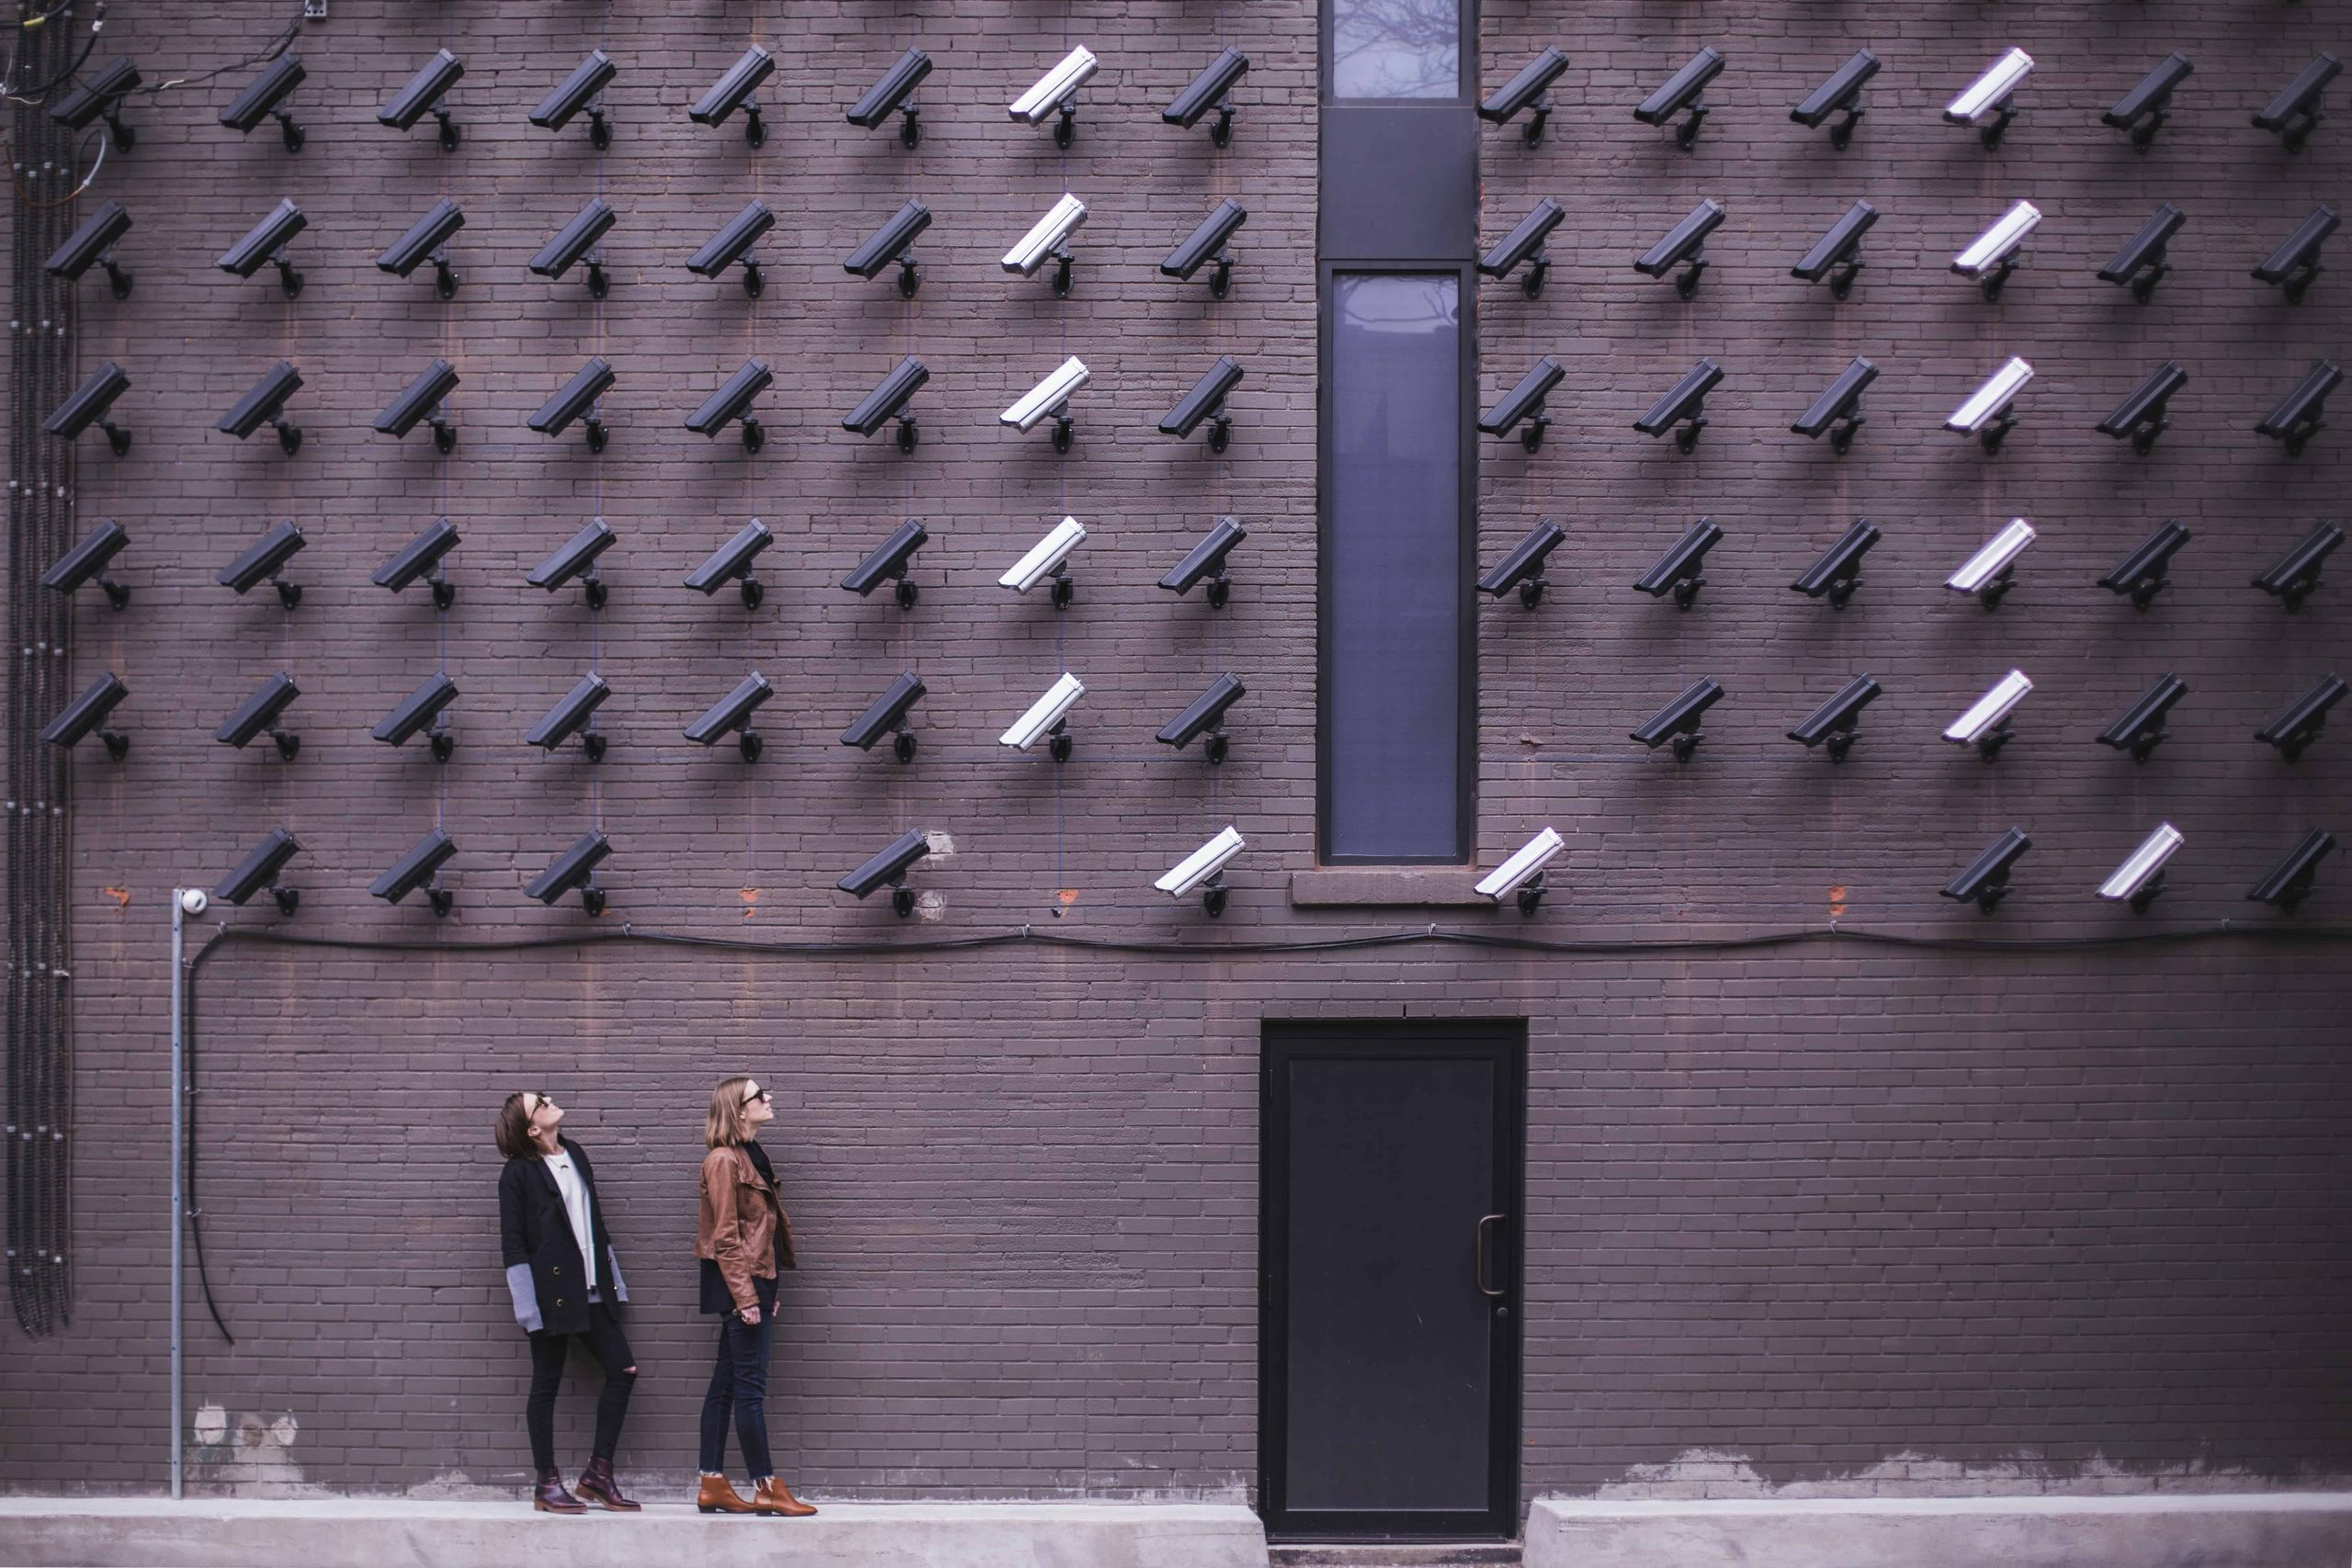 how to install surveillance cameras outside of the home